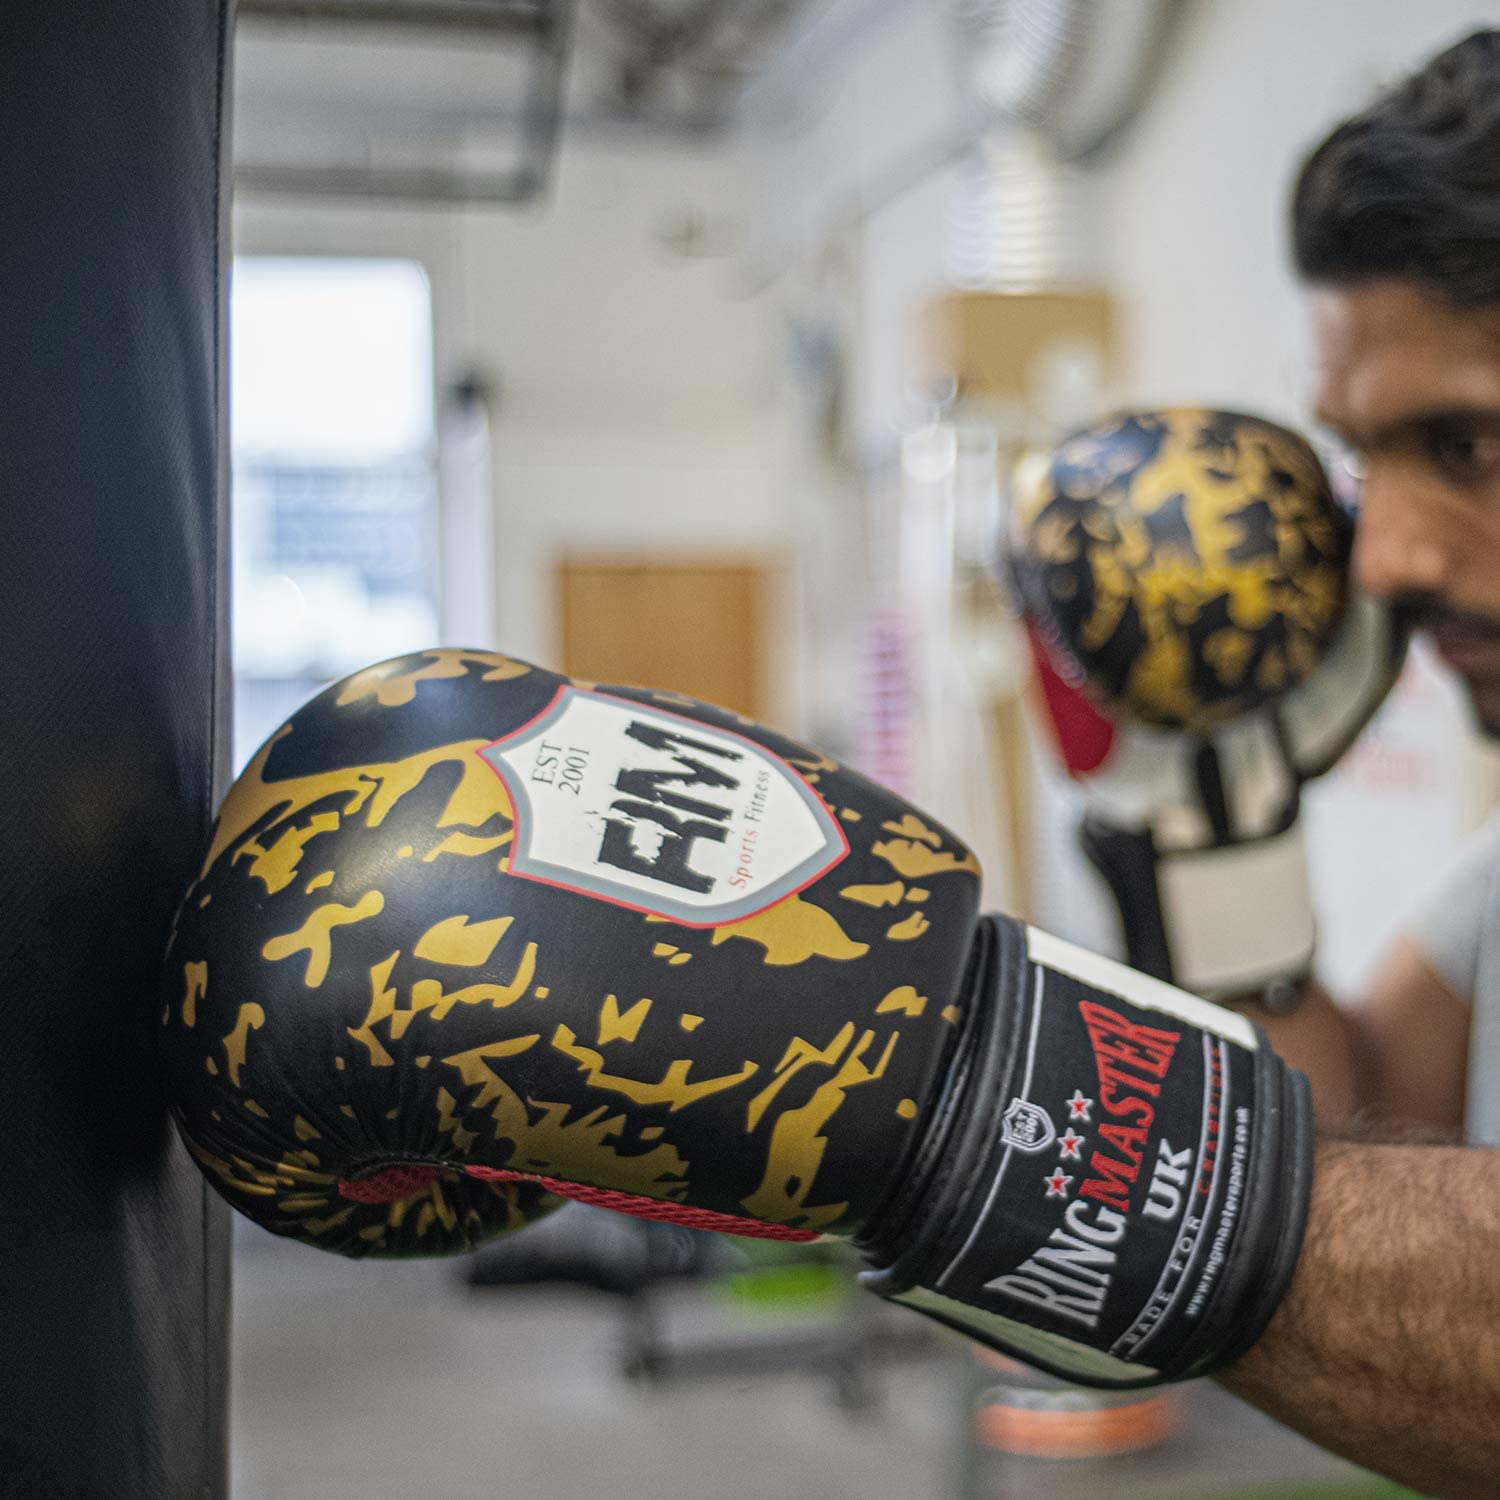 Black//Gold Patterned, 12 oz RingMaster Boxing Gloves Superfit Series Training Punch Bag Pads MMA Thai